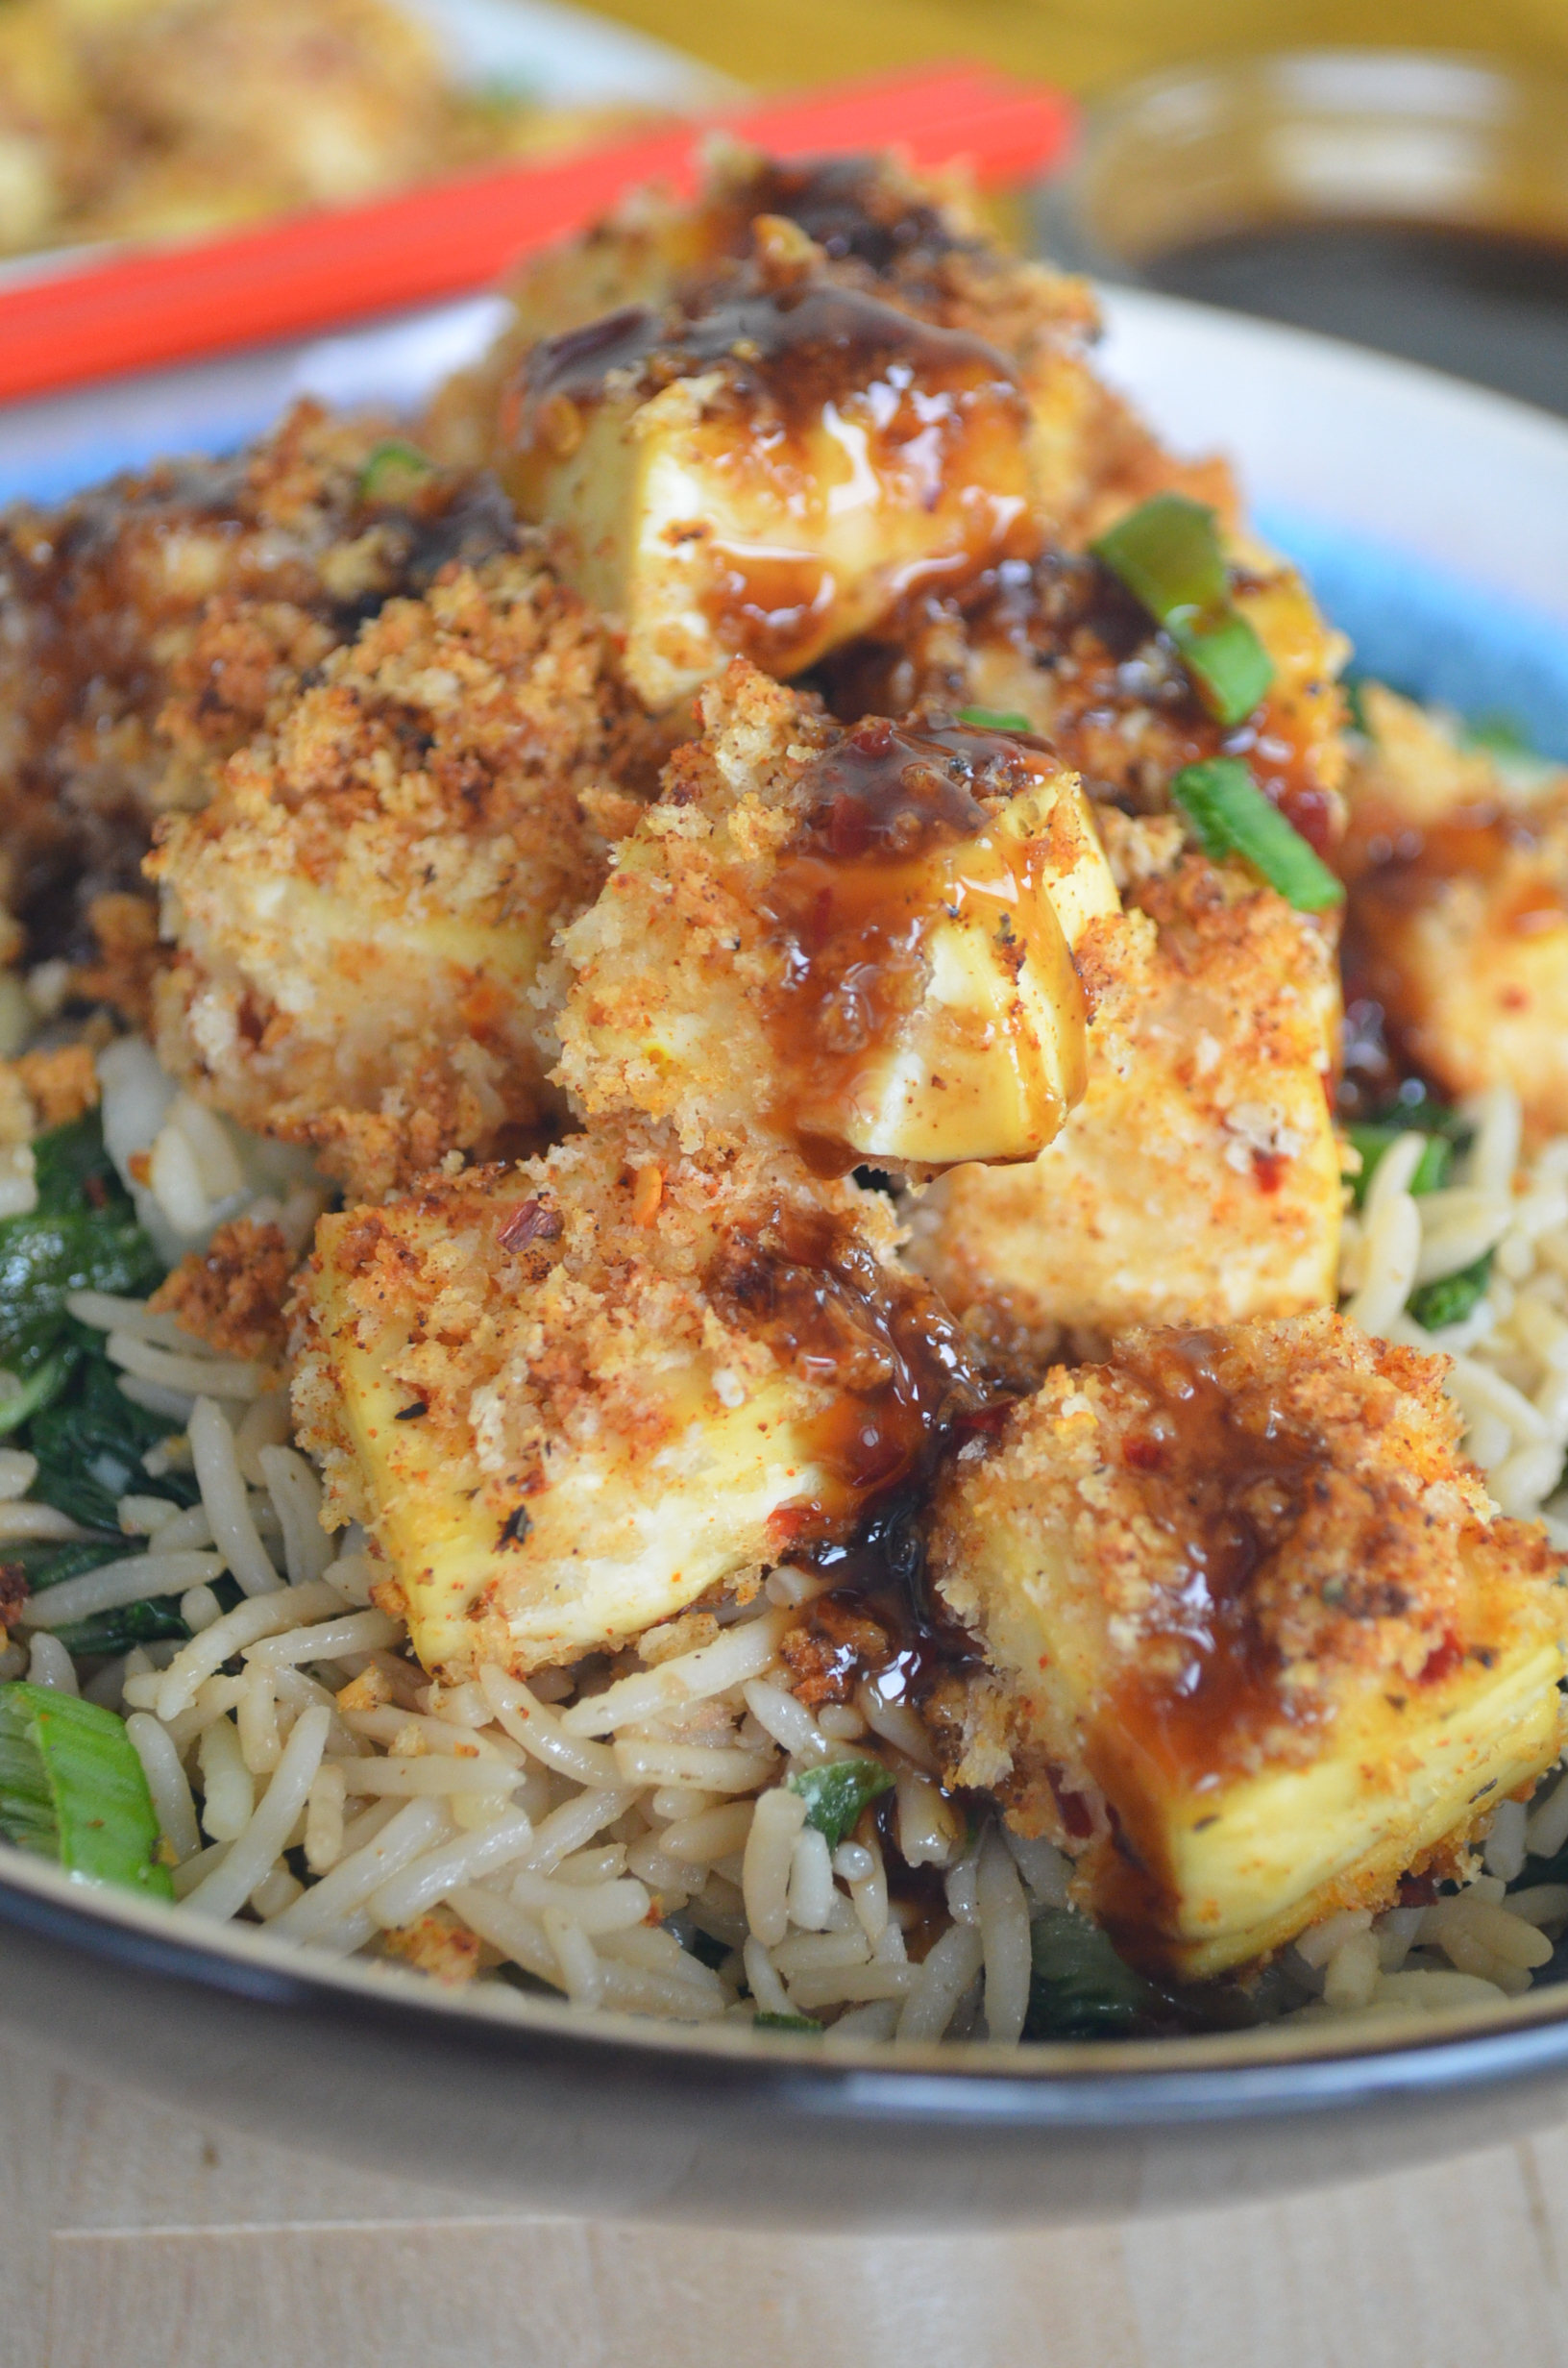 Baked Panko Crusted Tofu and Bokchoy Fried Ricce Bowl